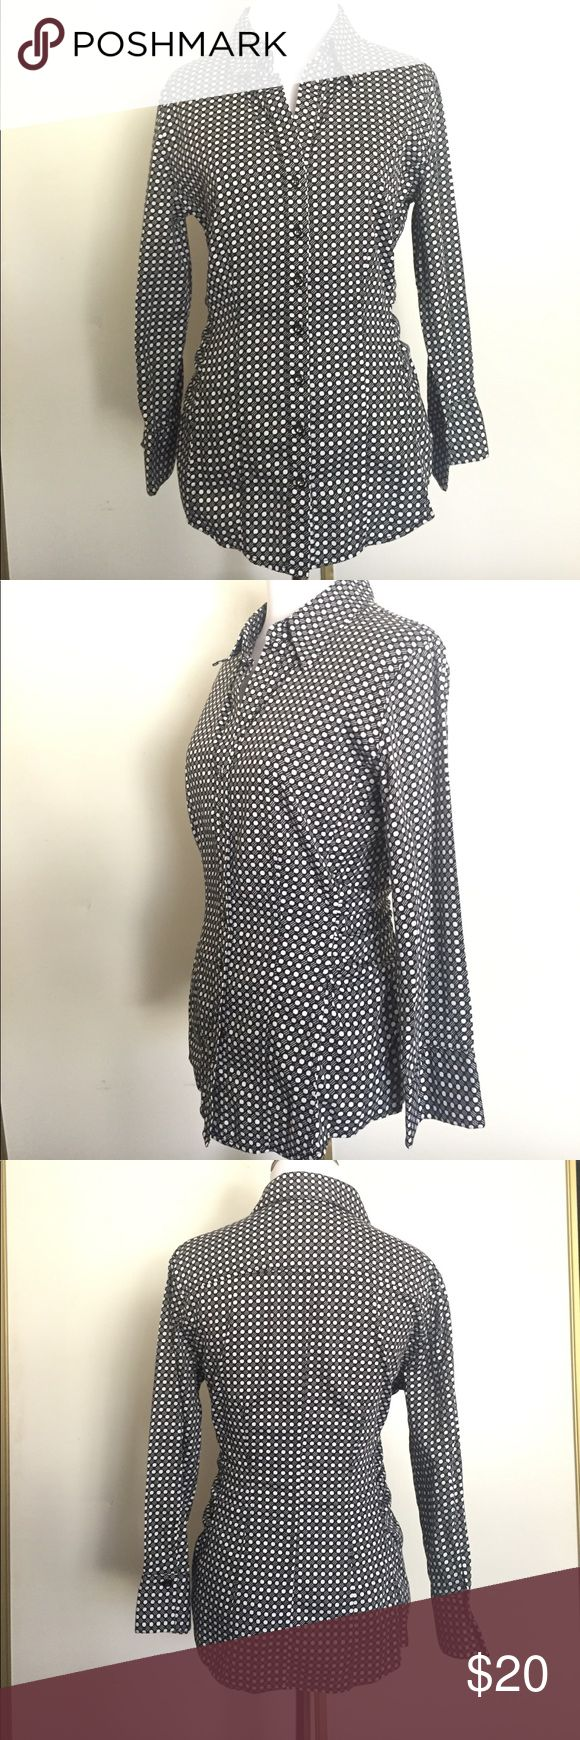 New York & Co City Stretch Button Down - size M New York & Company City Stretch collared polka shirt. Sides of the shirt are ruffled for a fitted look. In excellent condition. Worn once to an interview. See photos for details. Please no low balling and no trades. Bundle for additional discounts. New York & Company Tops Button Down Shirts